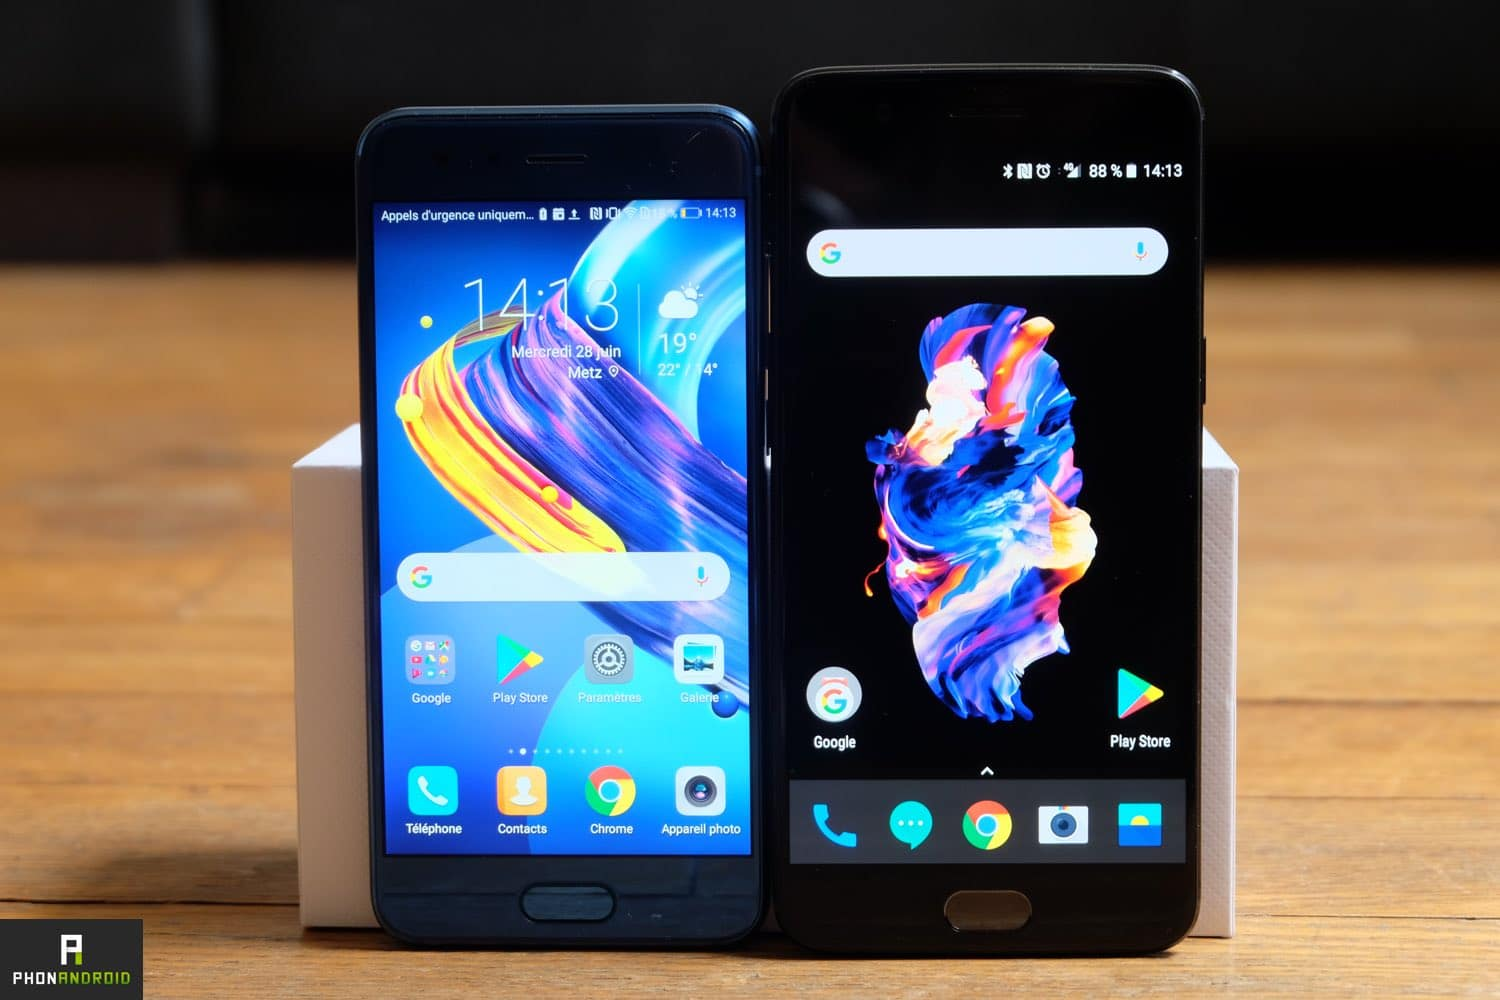 oneplus 5 vs honor 9 interface